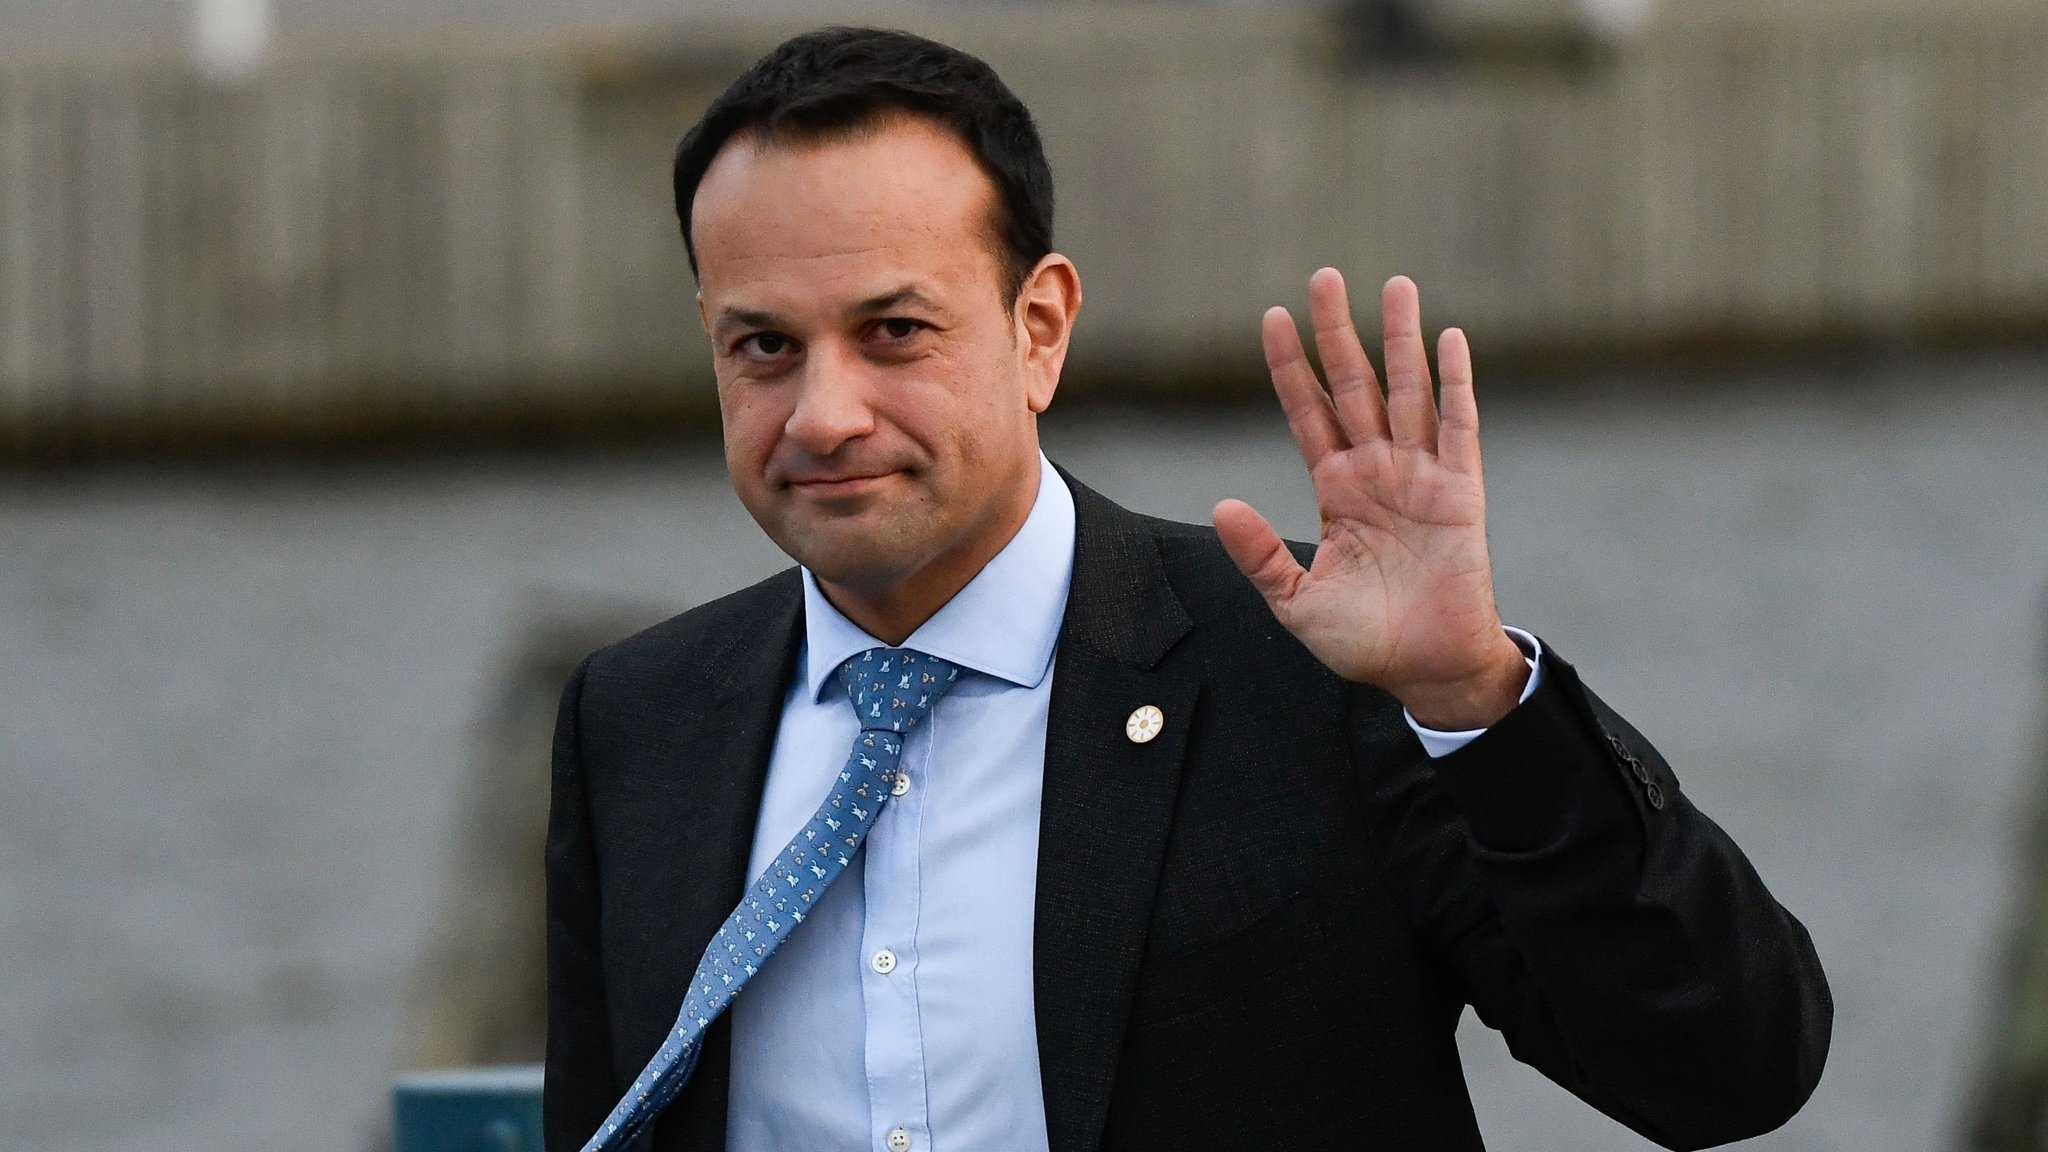 Irish government crisis worsens amid calls for deputy PM to quit